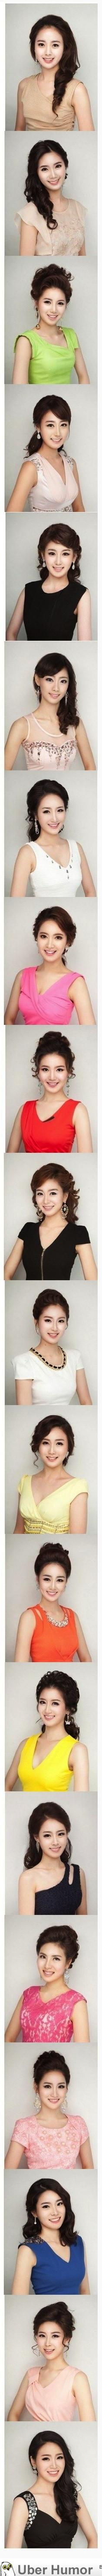 Korea's plastic surgery mayhem is finally converging on the same face. Here are the miss korea 2013 contestants.